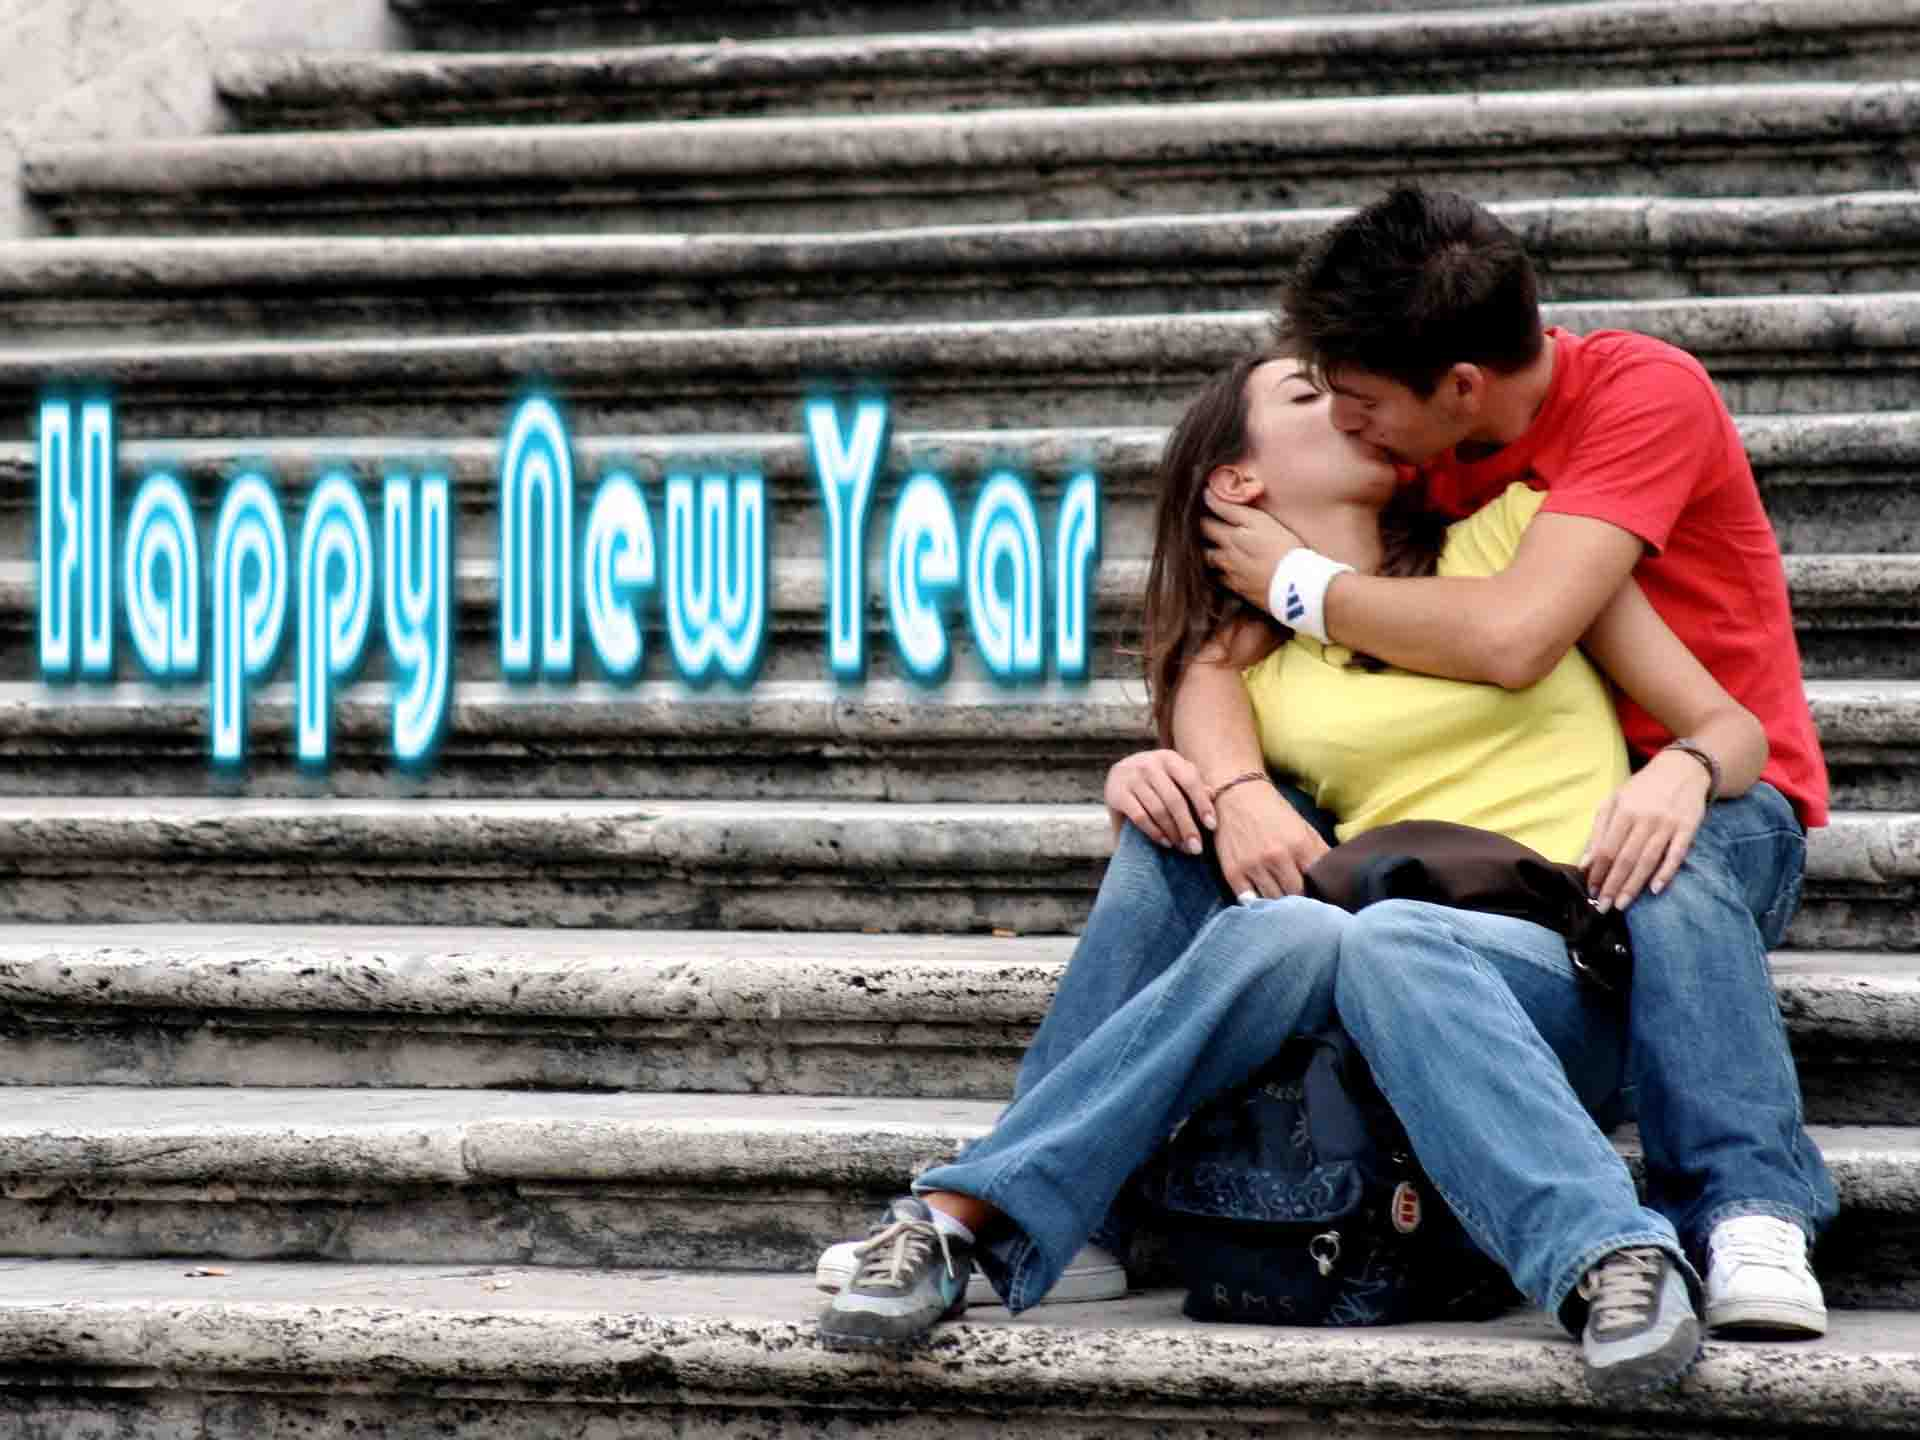 romantic happy new year kissing couple images wallpaper free download